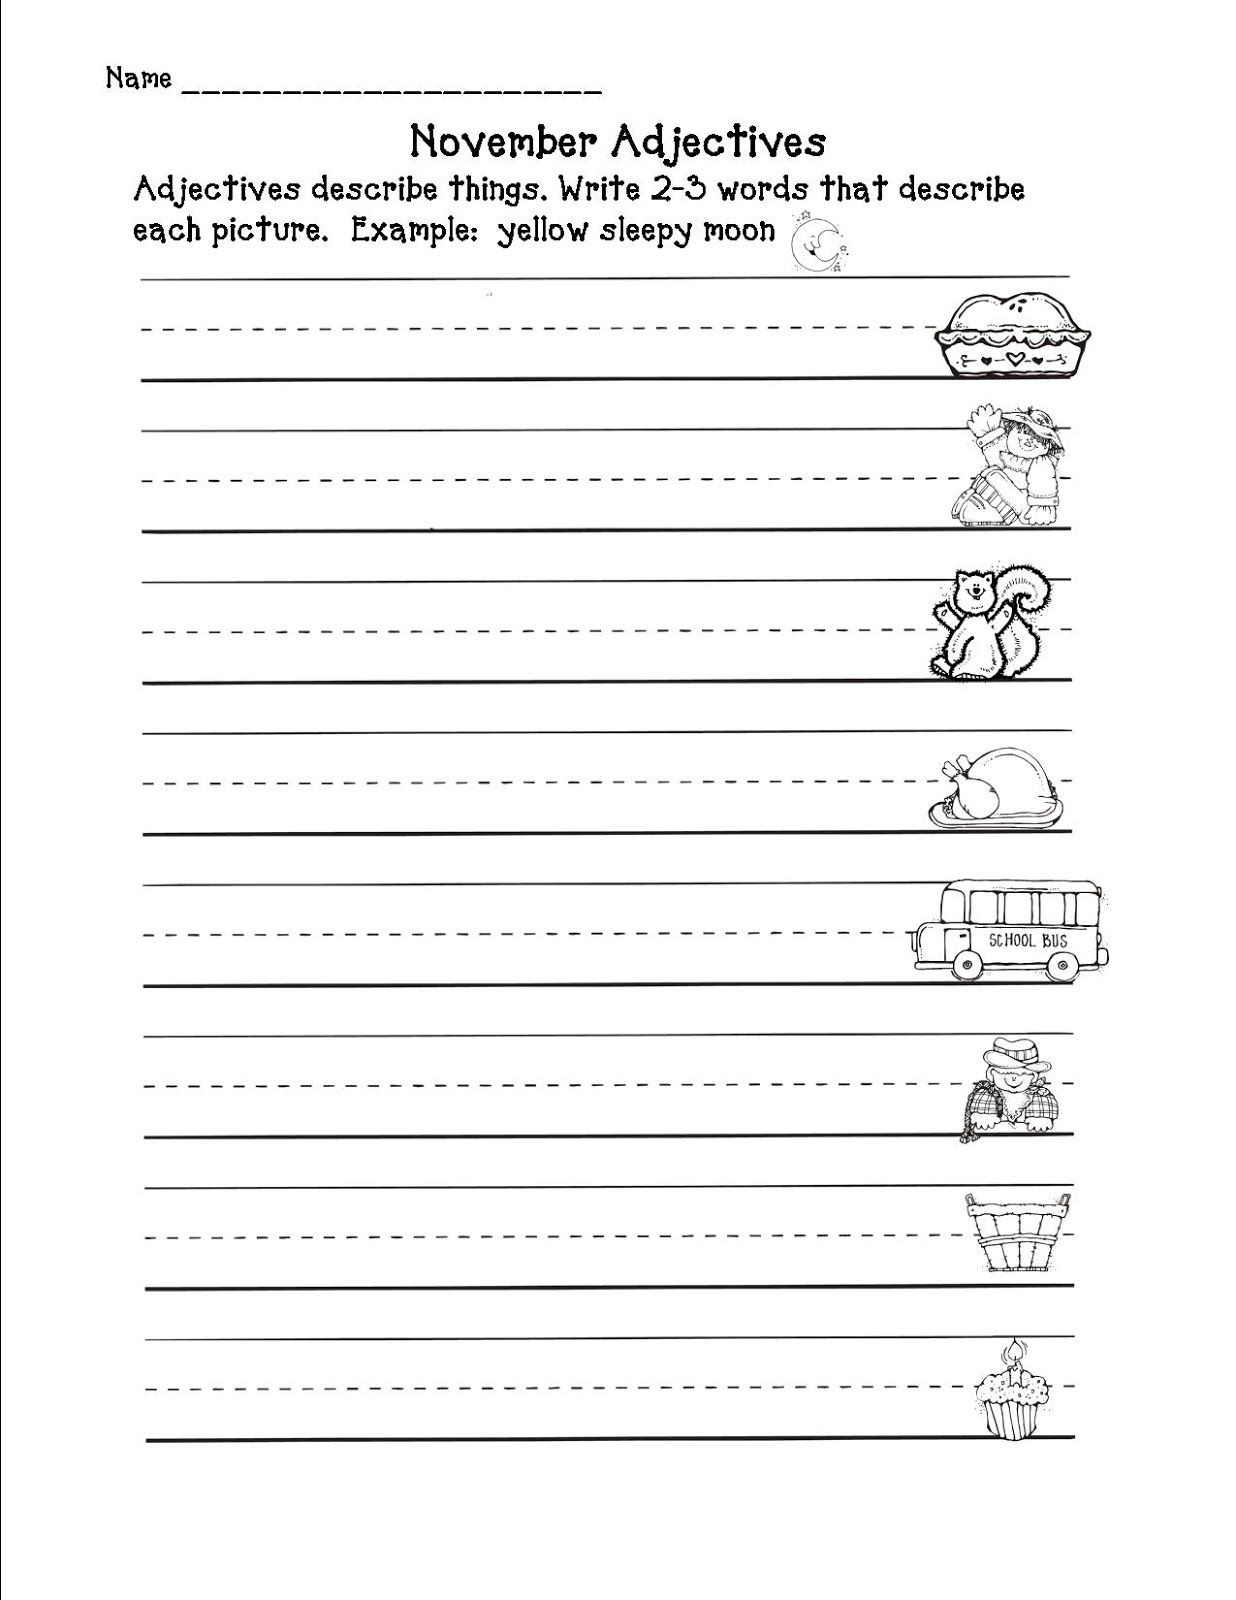 Adjectives Worksheet 2nd Grade E More Newbie for My Store